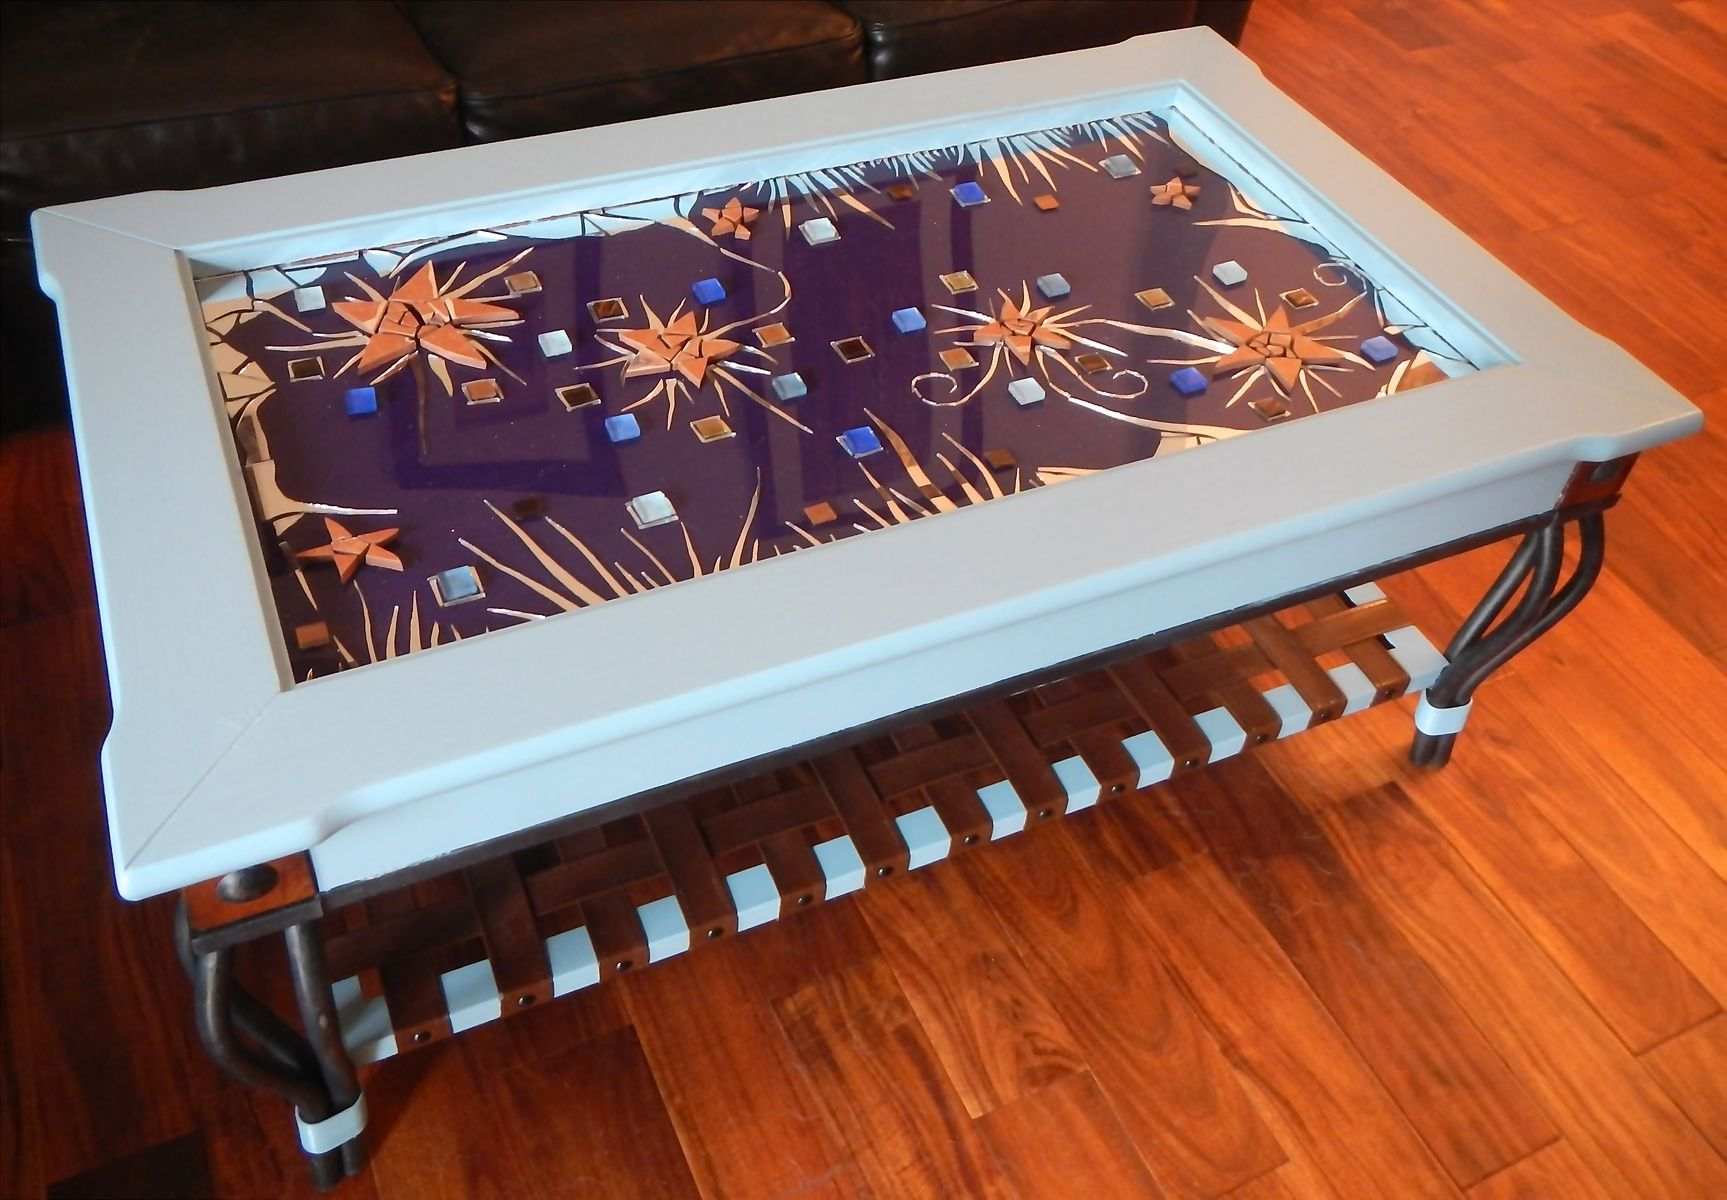 Custom Colorful Table Refinished With Original Mosaic Artwork by